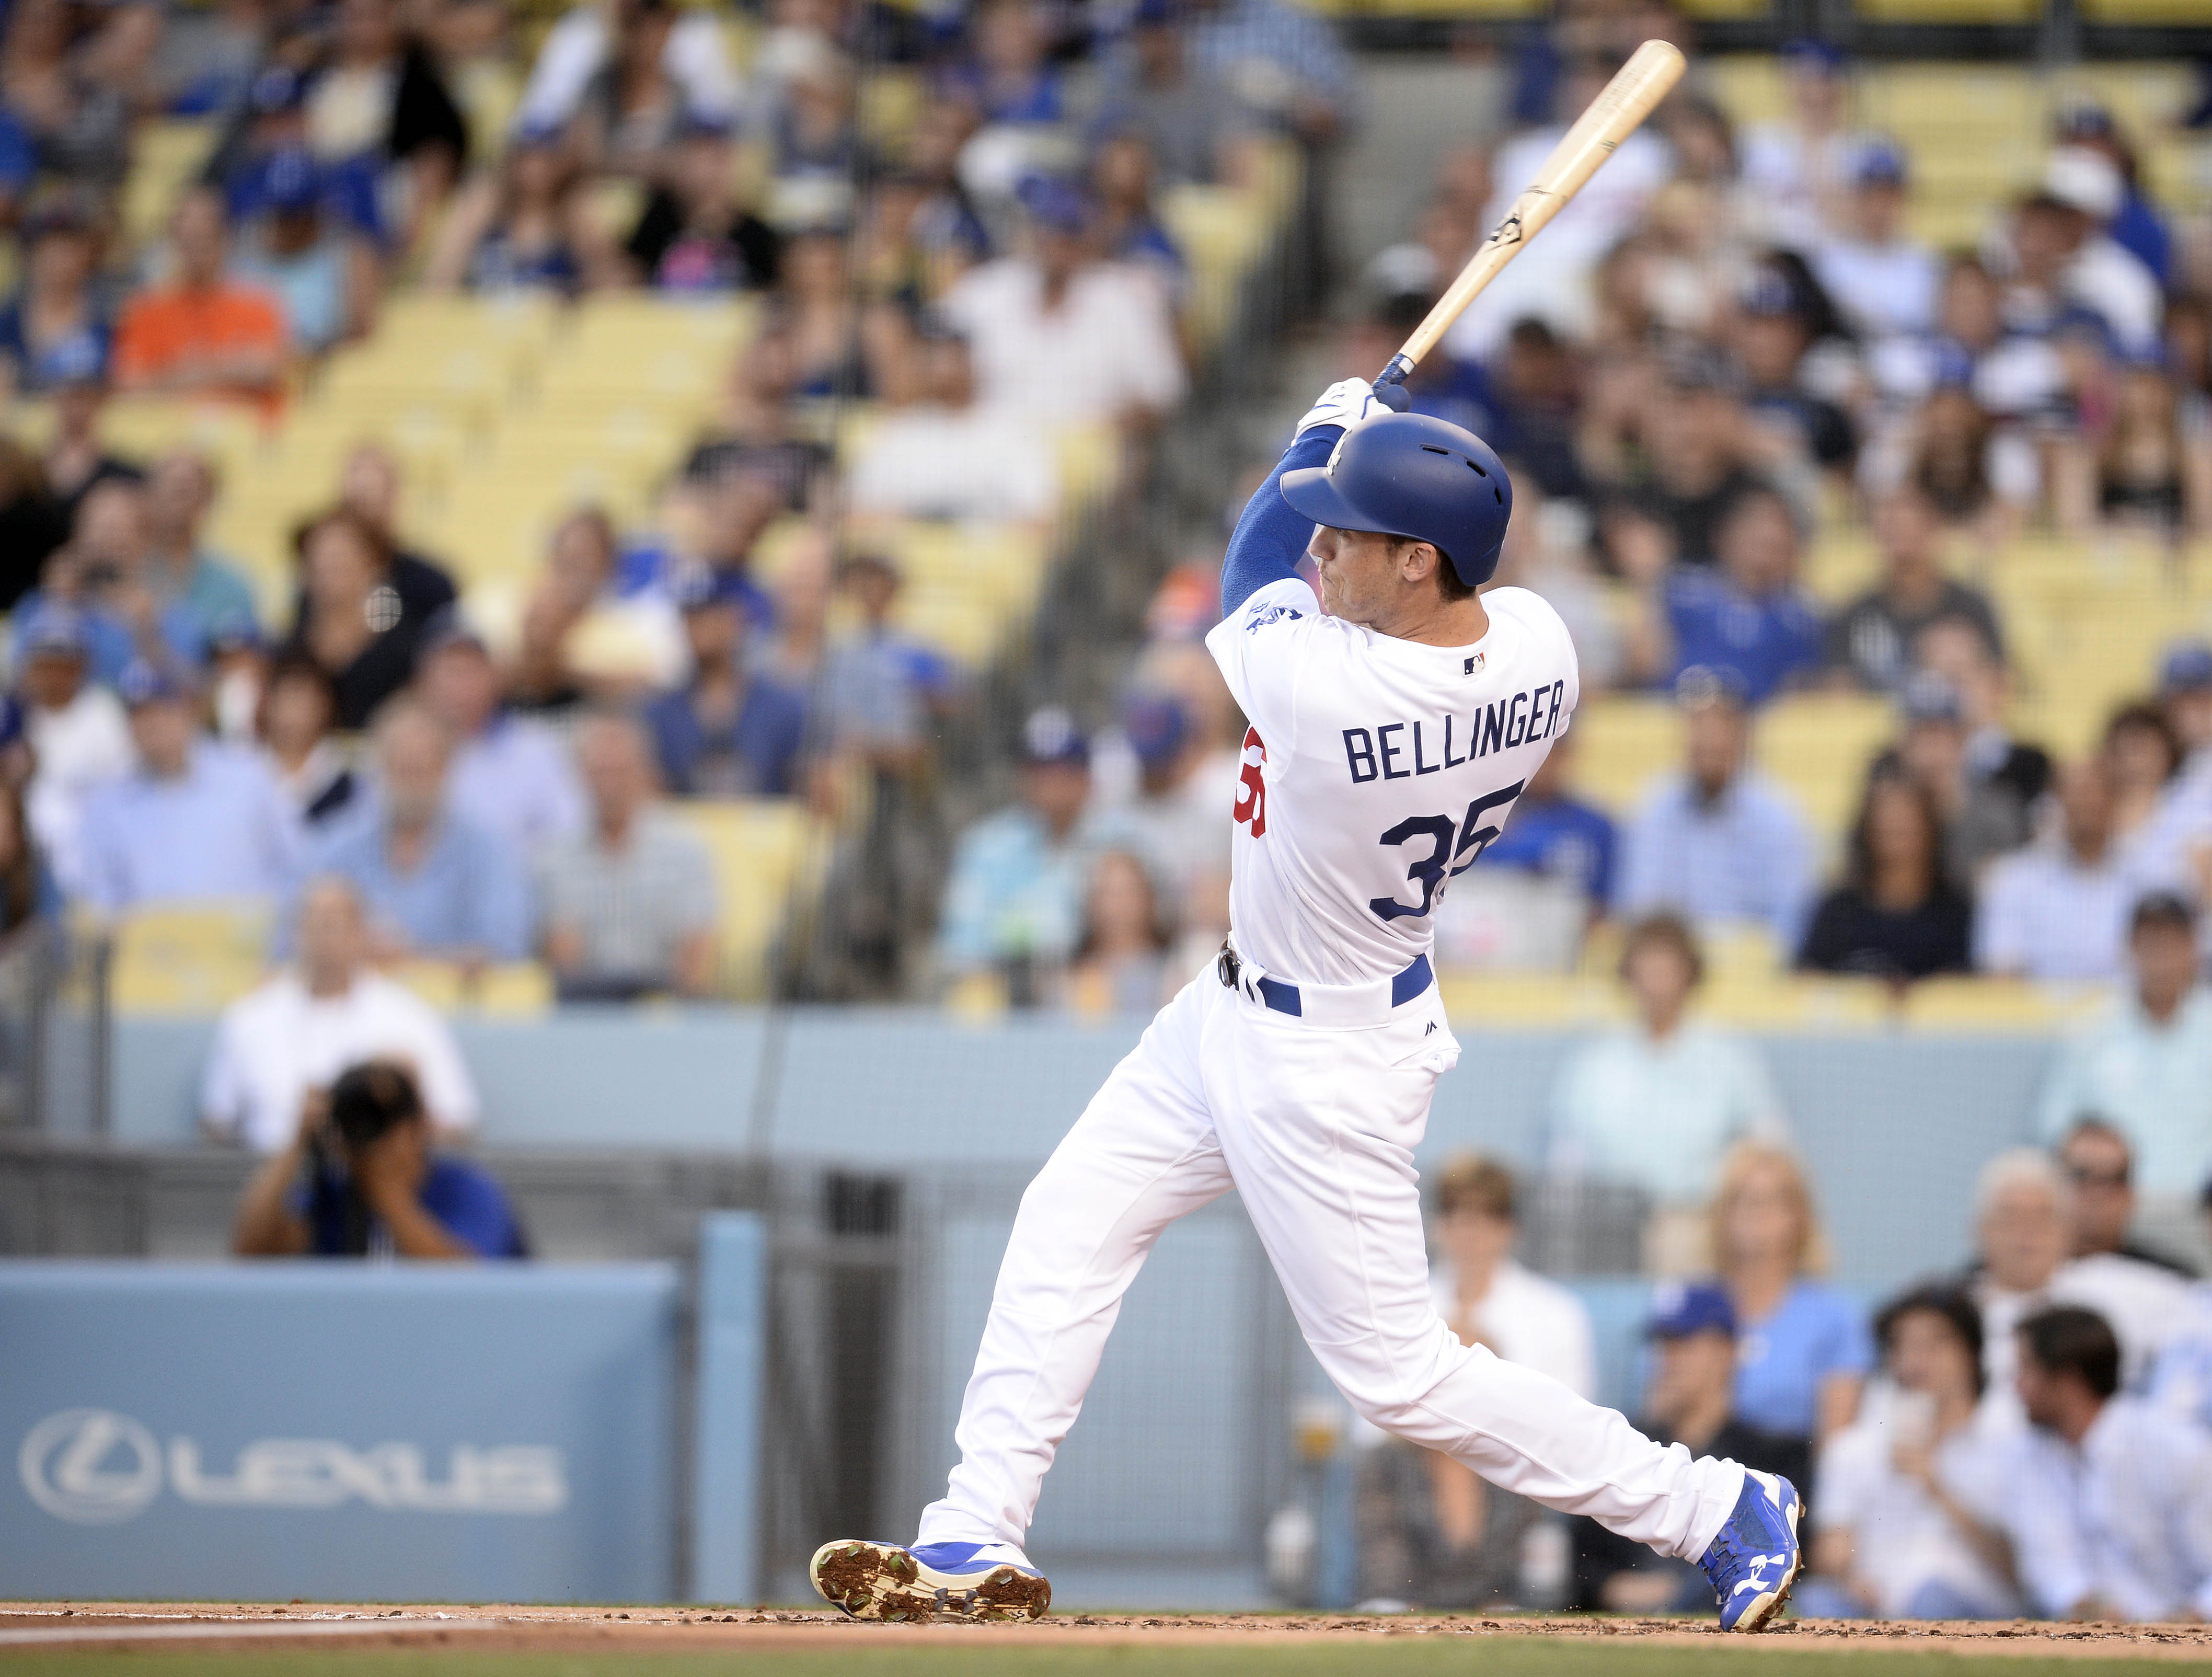 10123110-mlb-new-york-mets-at-los-angeles-dodgers-1